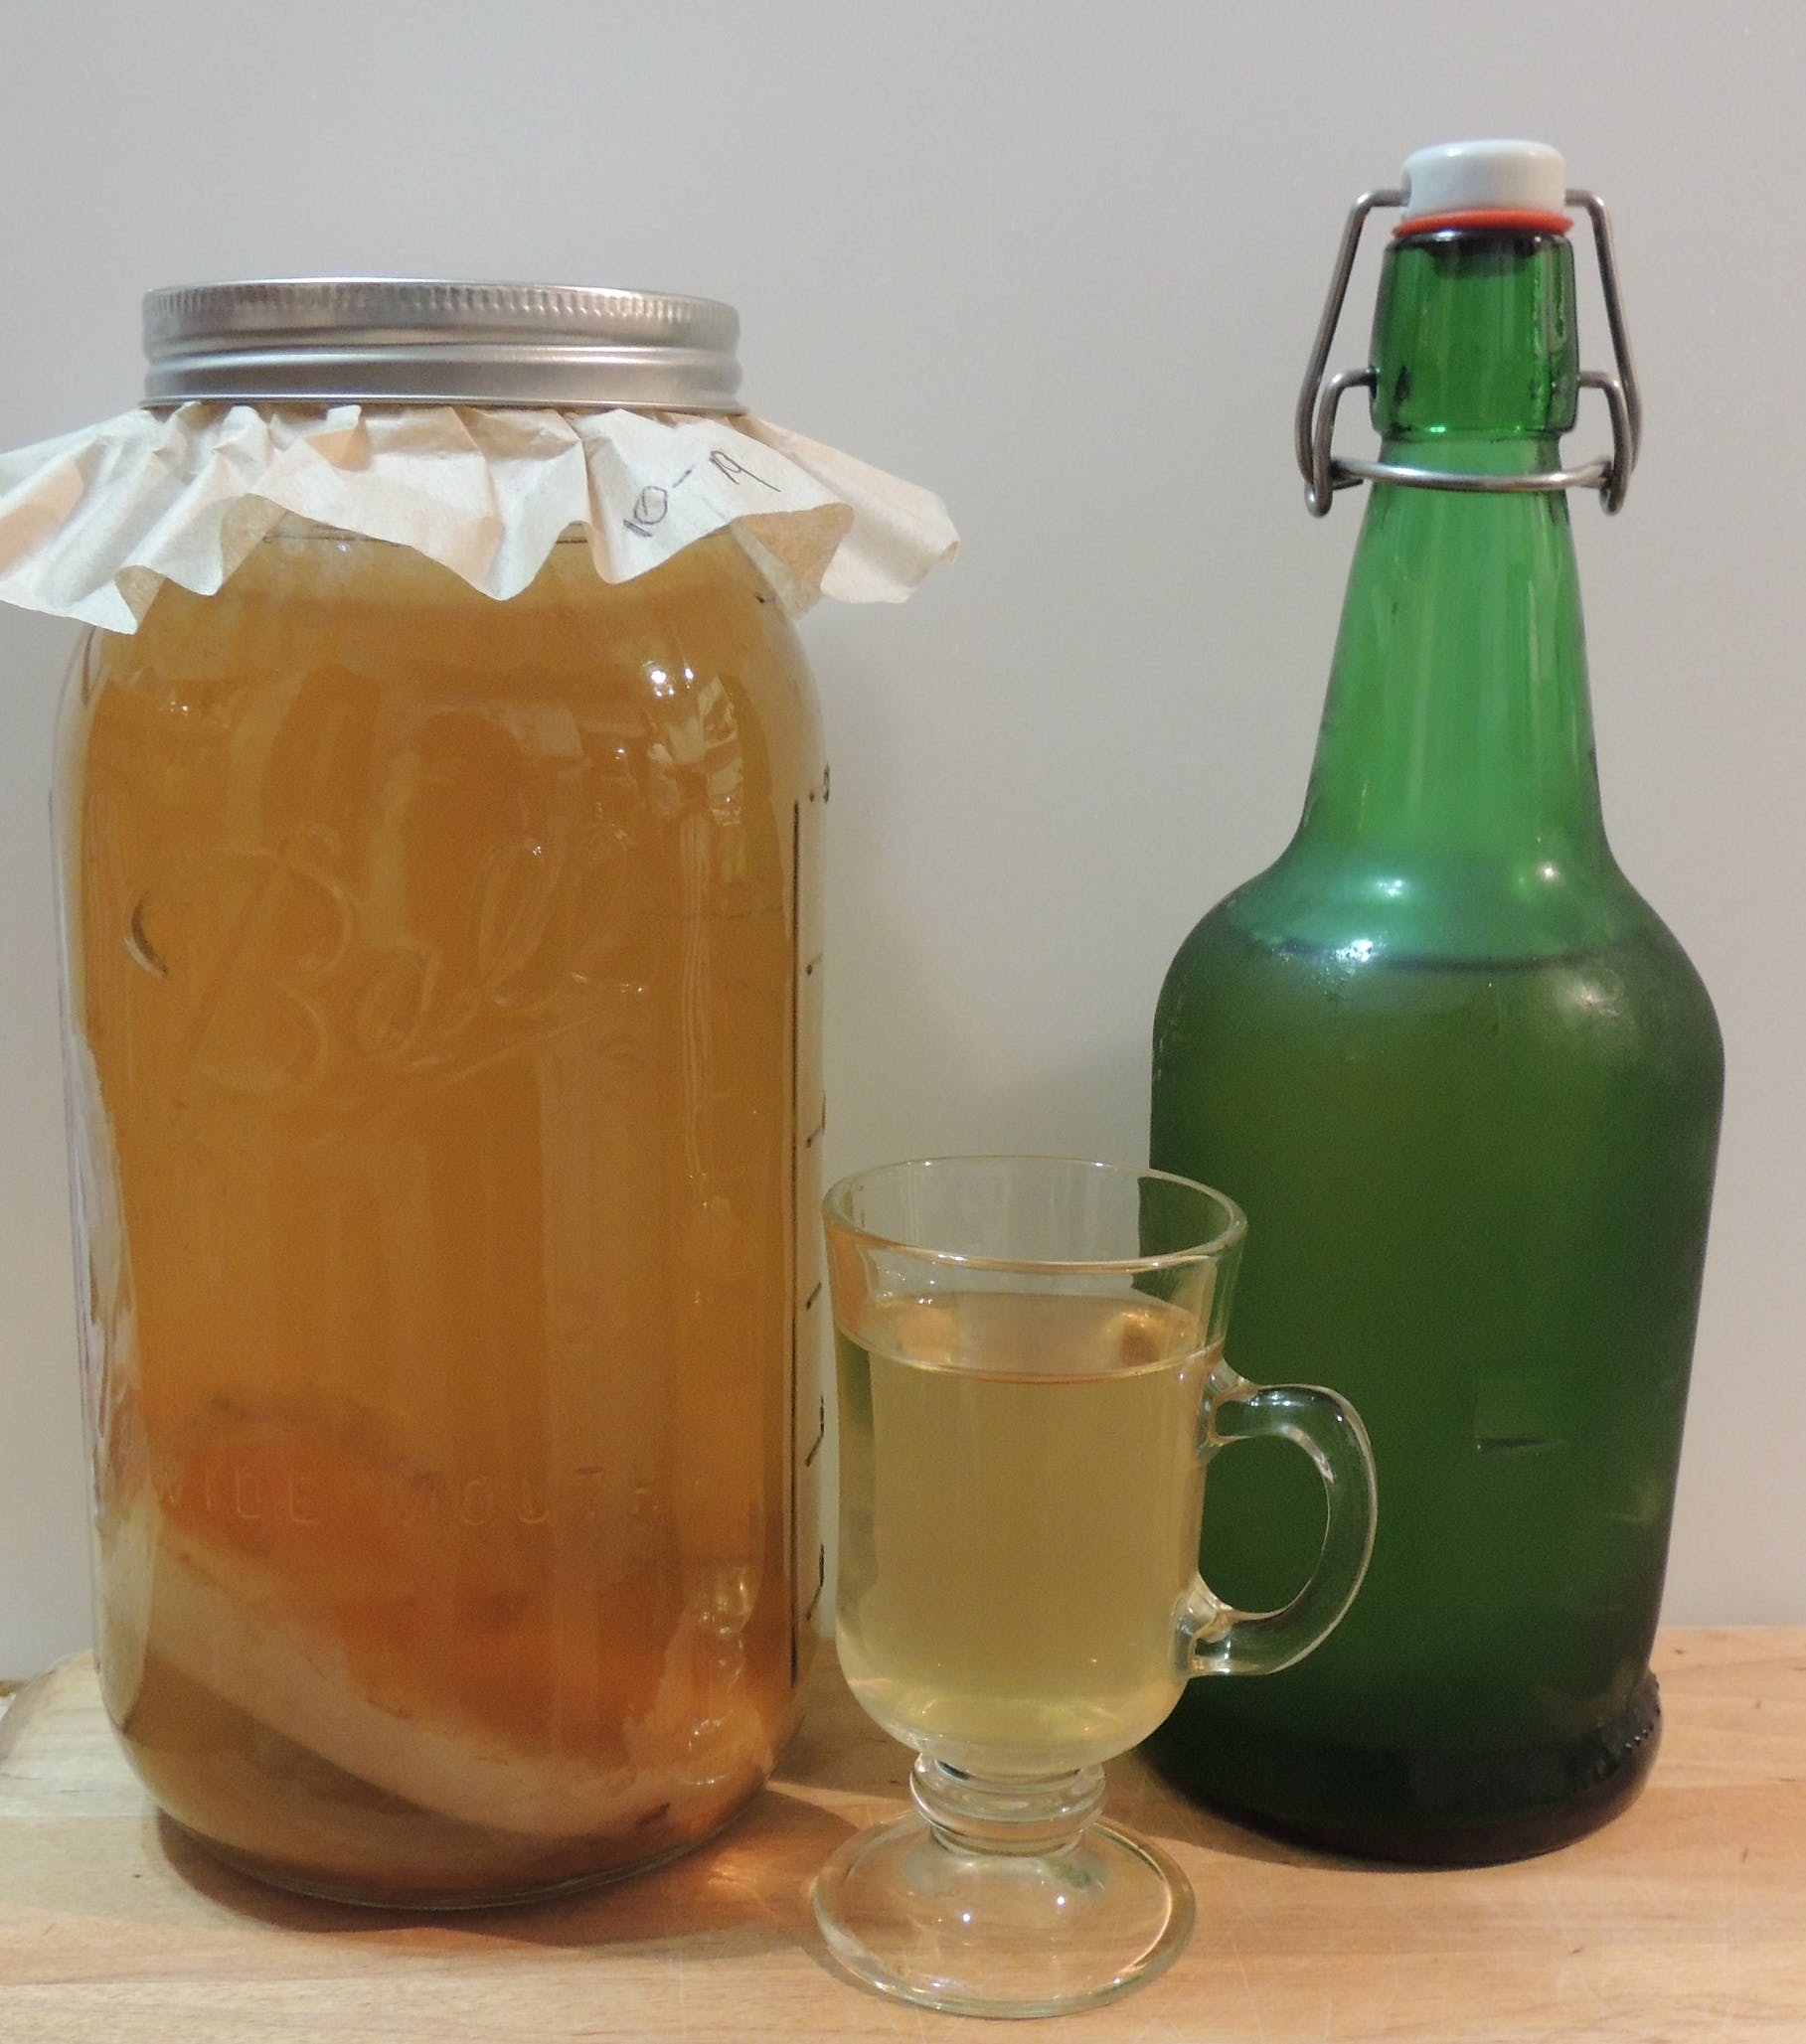 fermentation, fermented foods, homemade kombucha